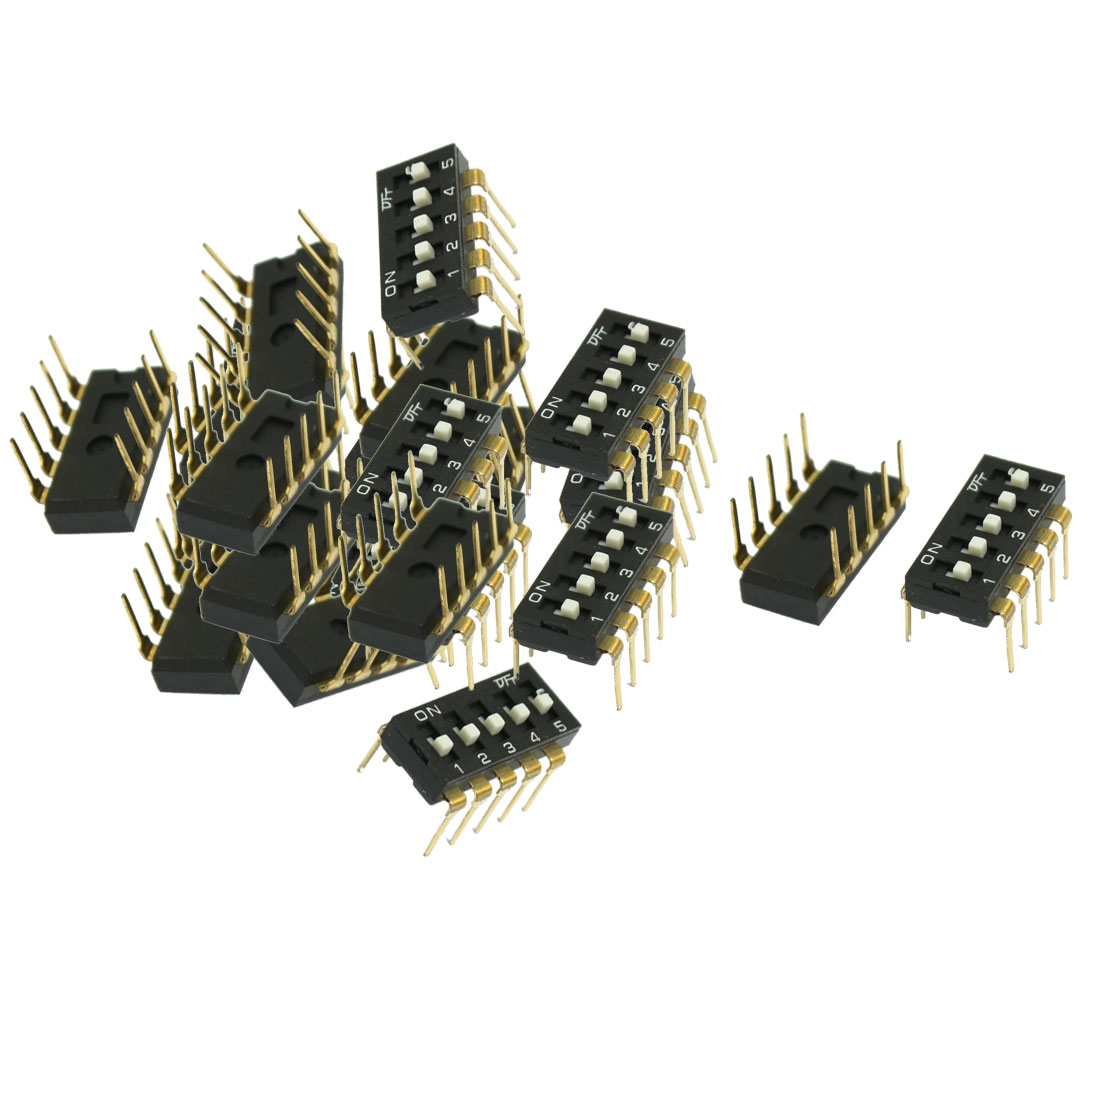 33 Pcs 2.54mm Pitch 5 Position Slide Style SMD Switches Black